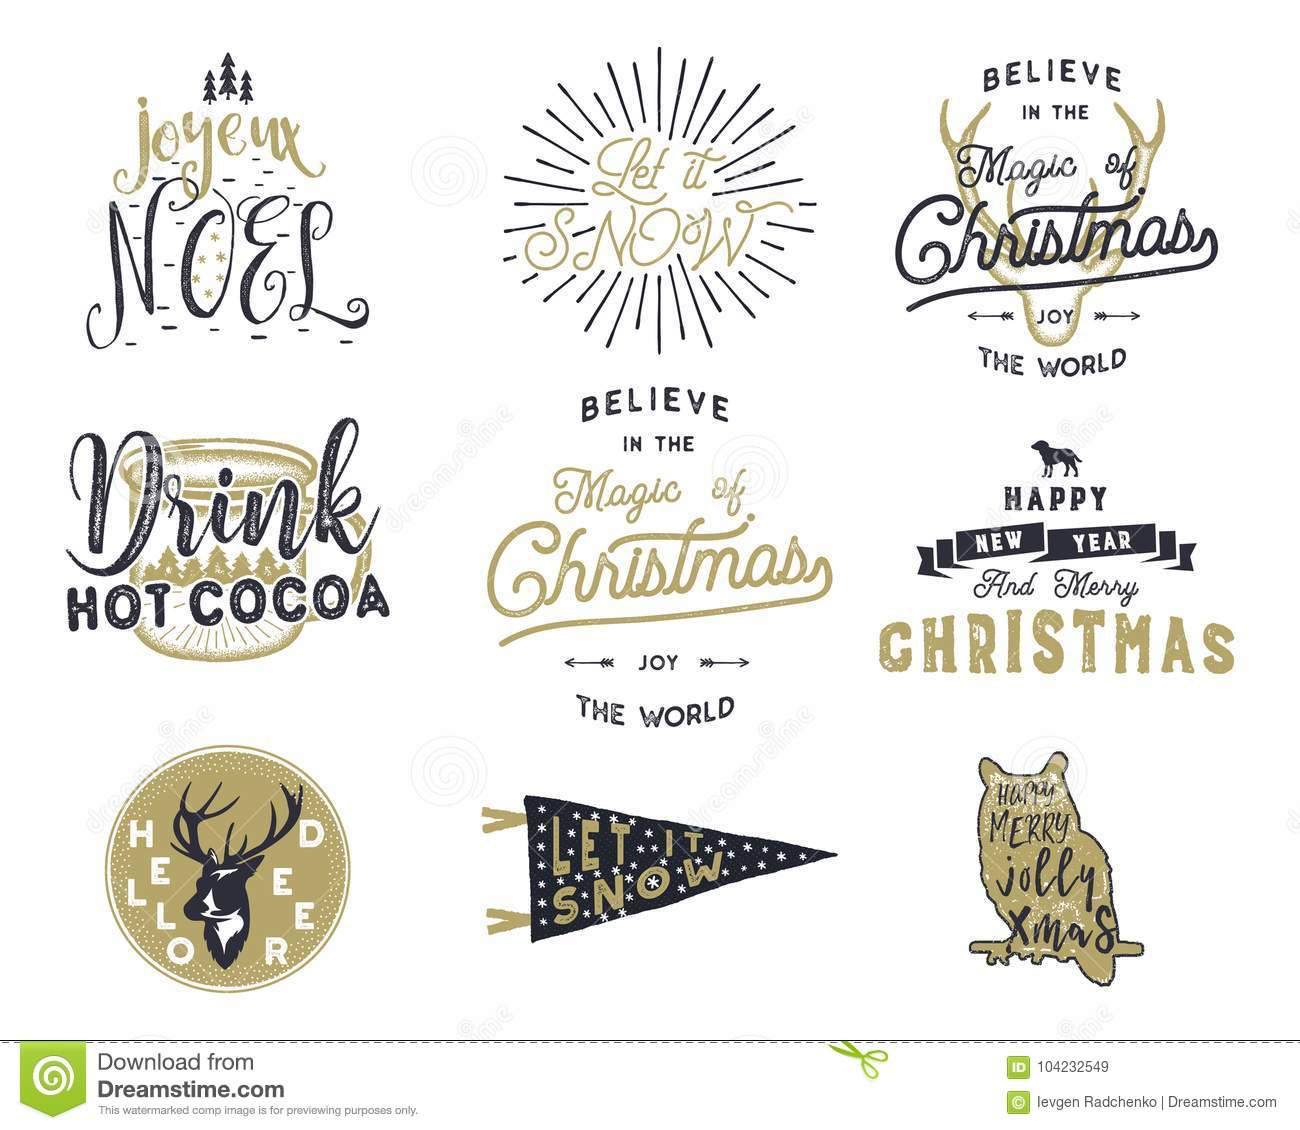 Big Merry Christmas Typography Quotes Wishes Bundle Sunbursts